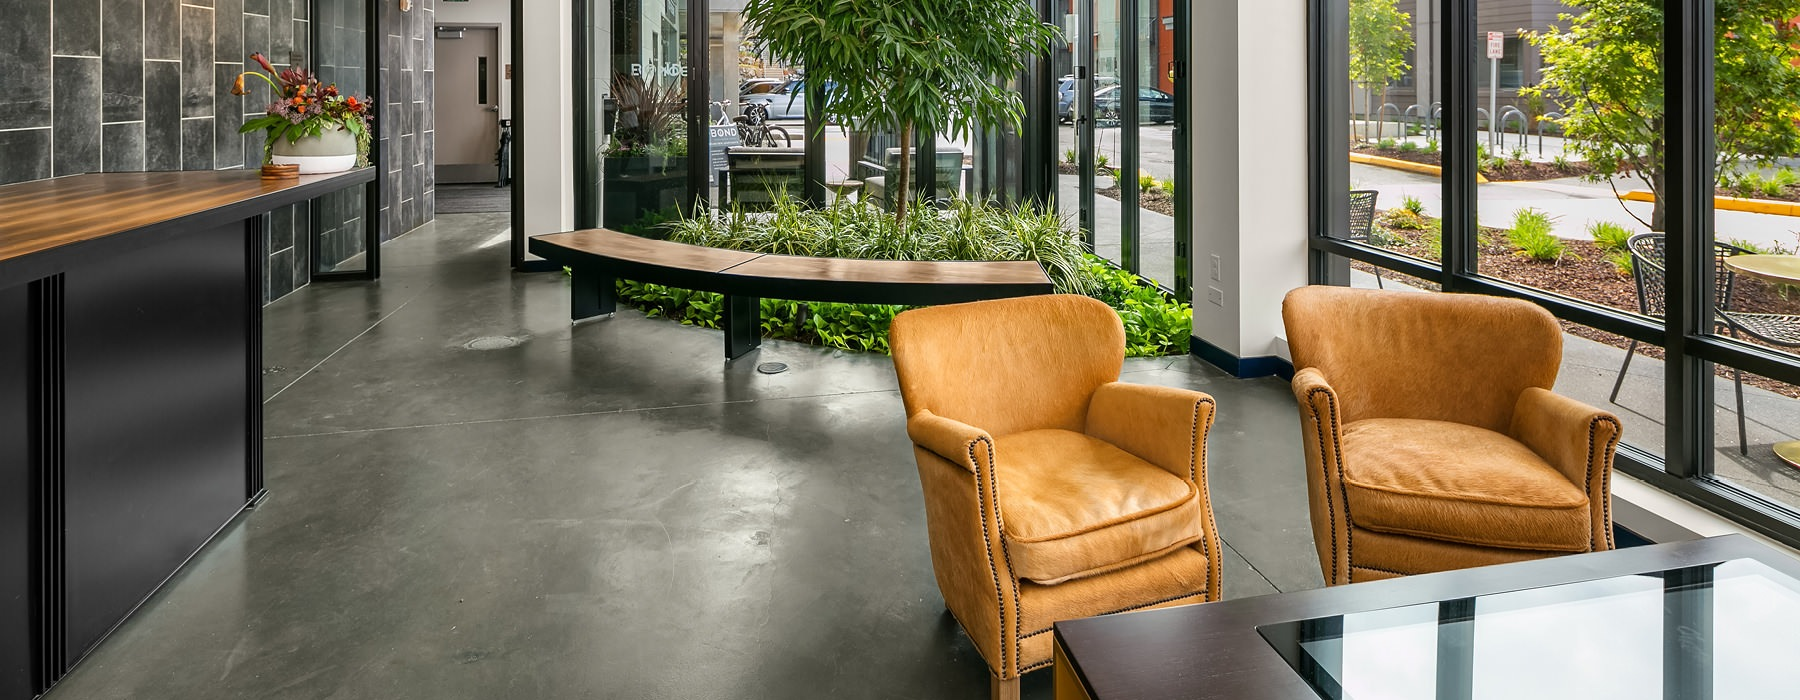 floor-to-ceiling windows and seating areas provided in apartment lobby